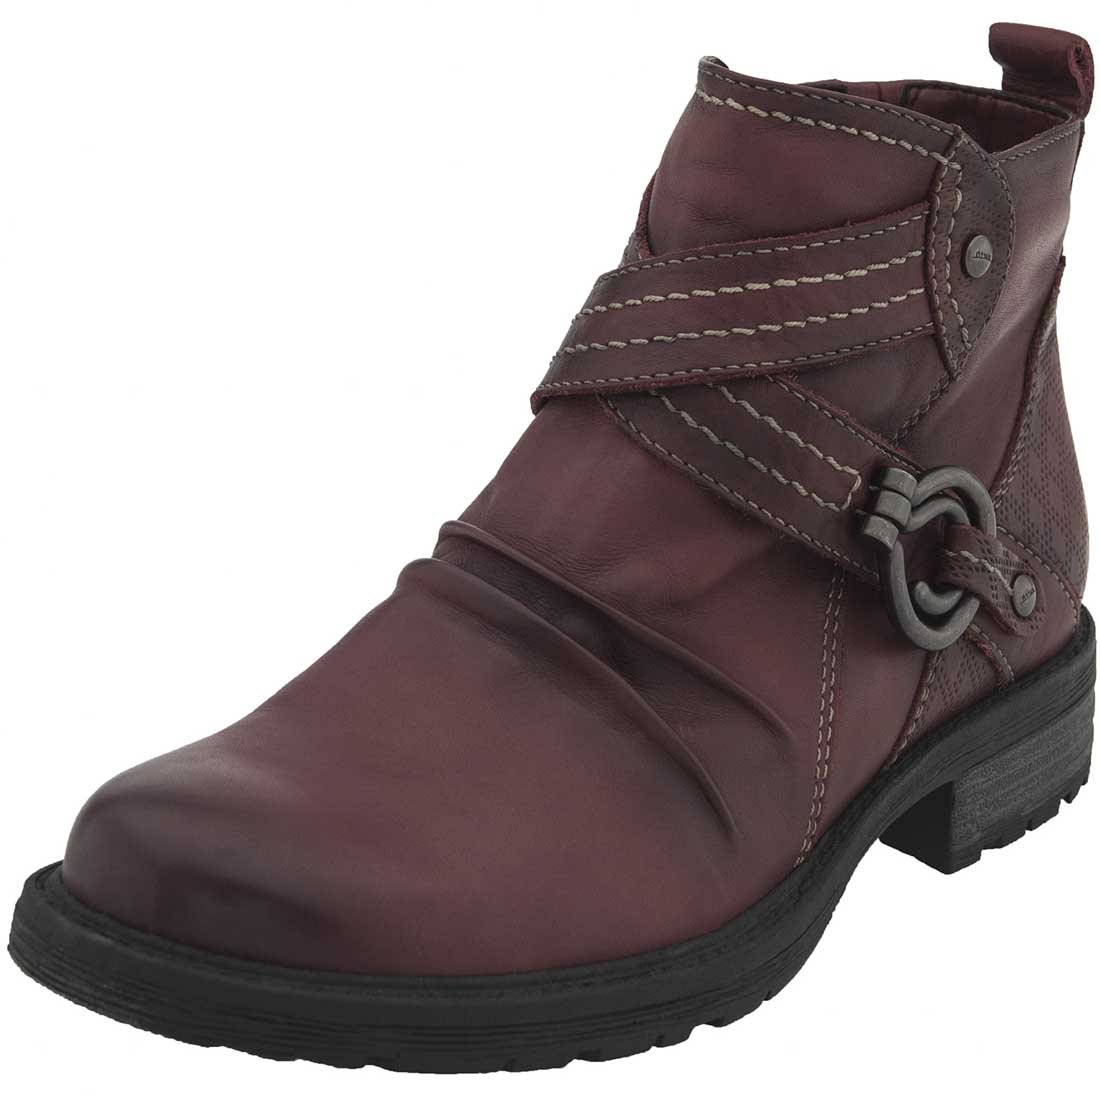 Earth Womens Laurel Leather Almond Toe Ankle Combat Boots B06X19LZQ6 8 B(M) US|Bordeaux Full Grain Leather